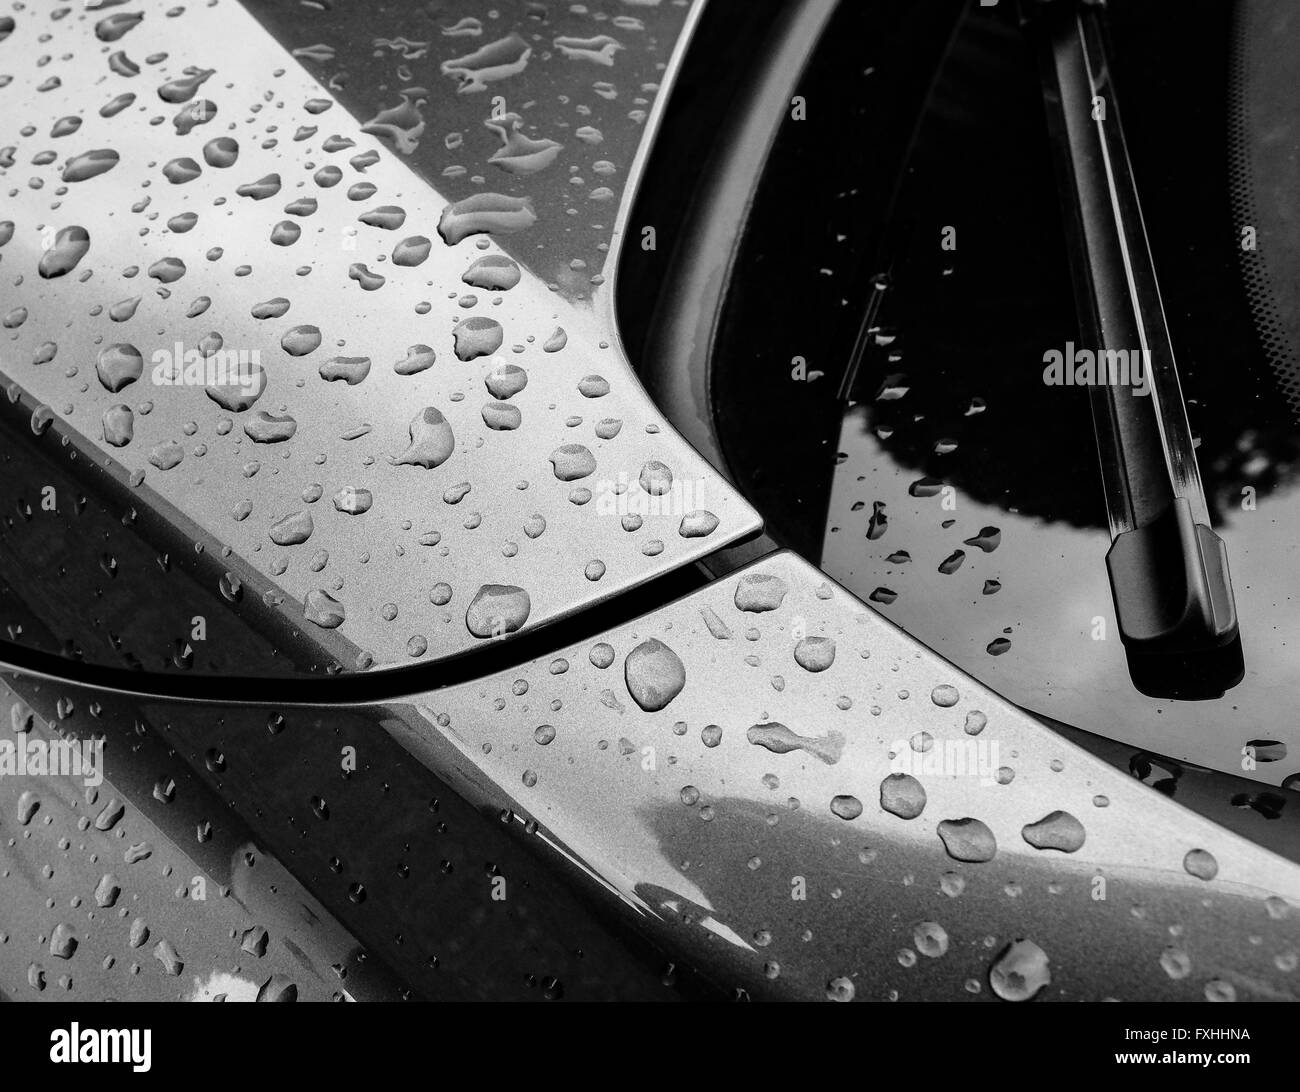 Droplets of water on the body of a new BMW sports car. - Stock Image